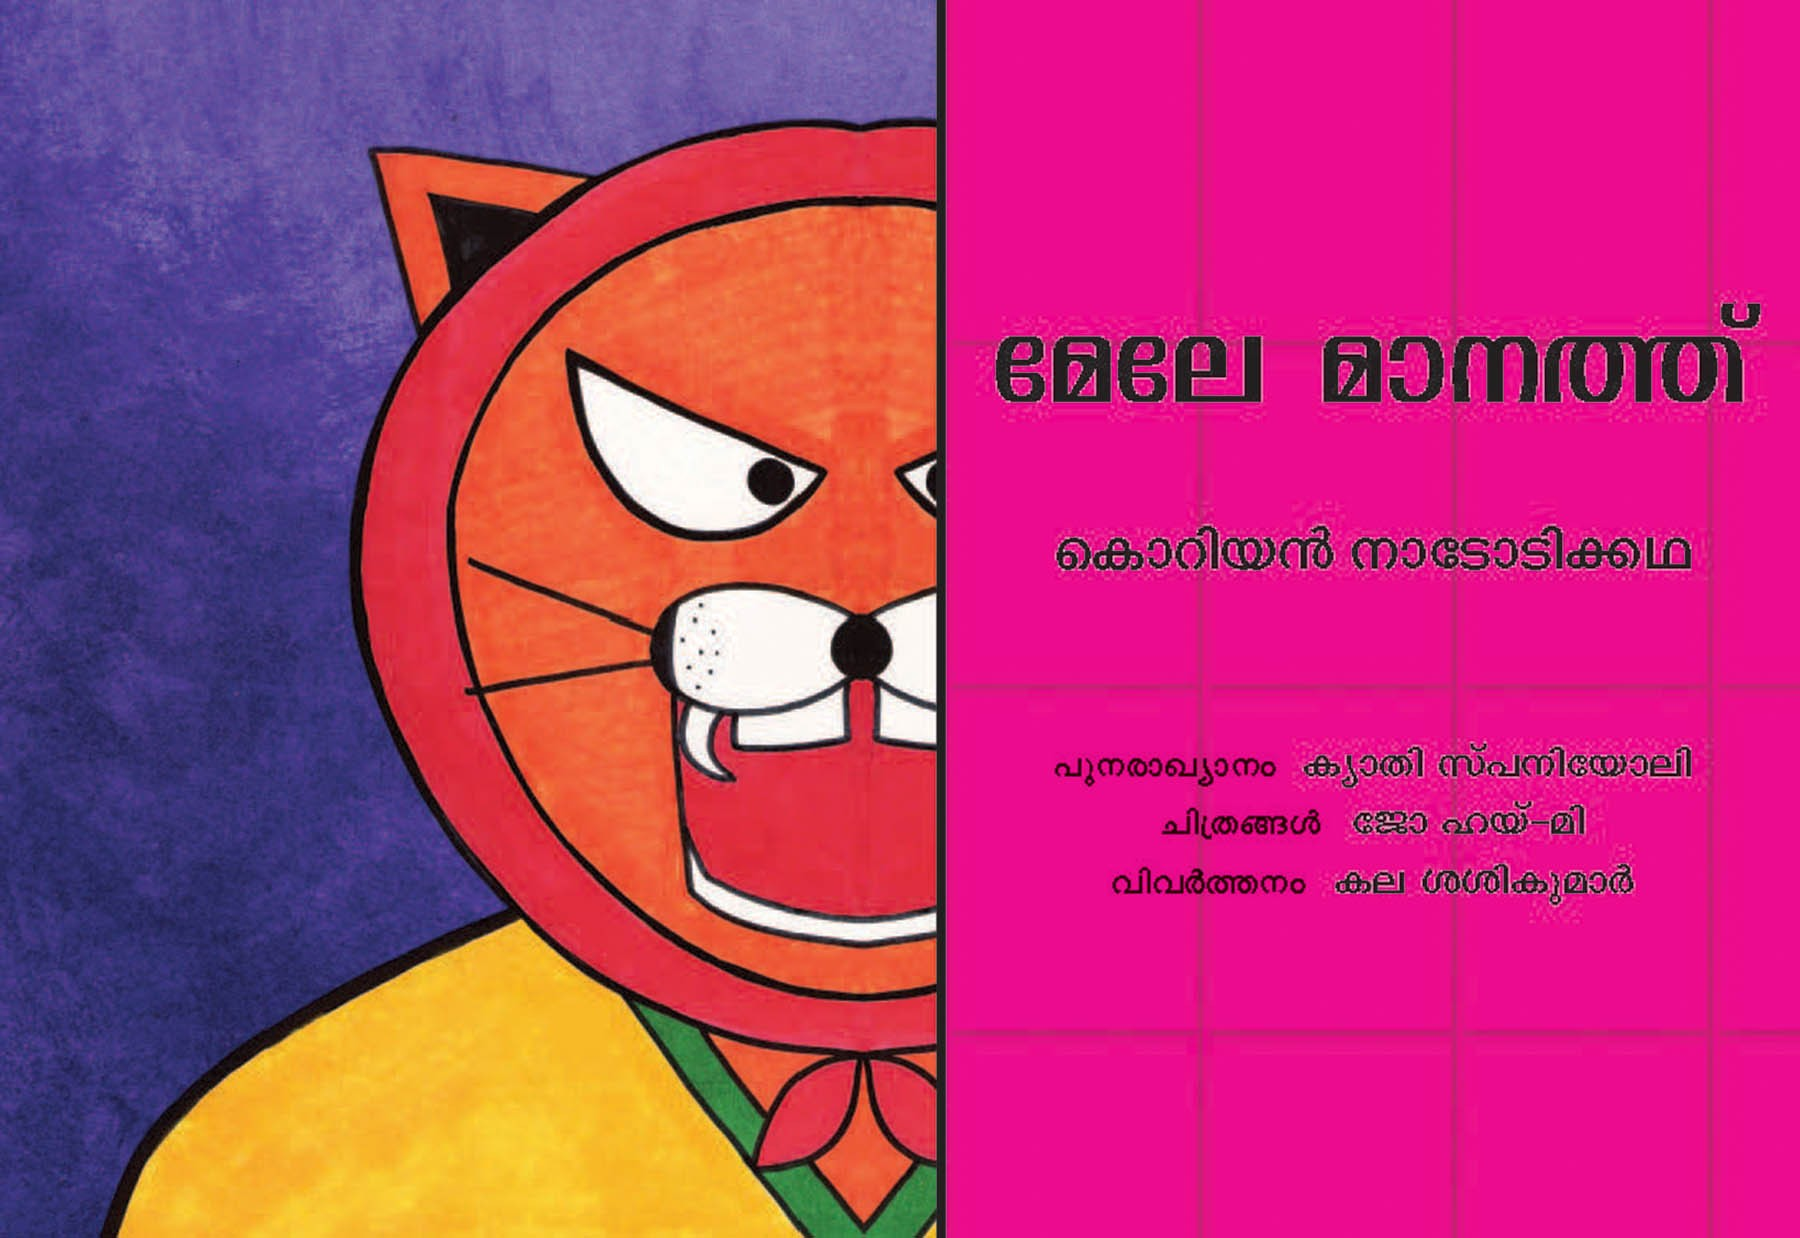 High In The Sky/Meley Maanathu (Malayalam)